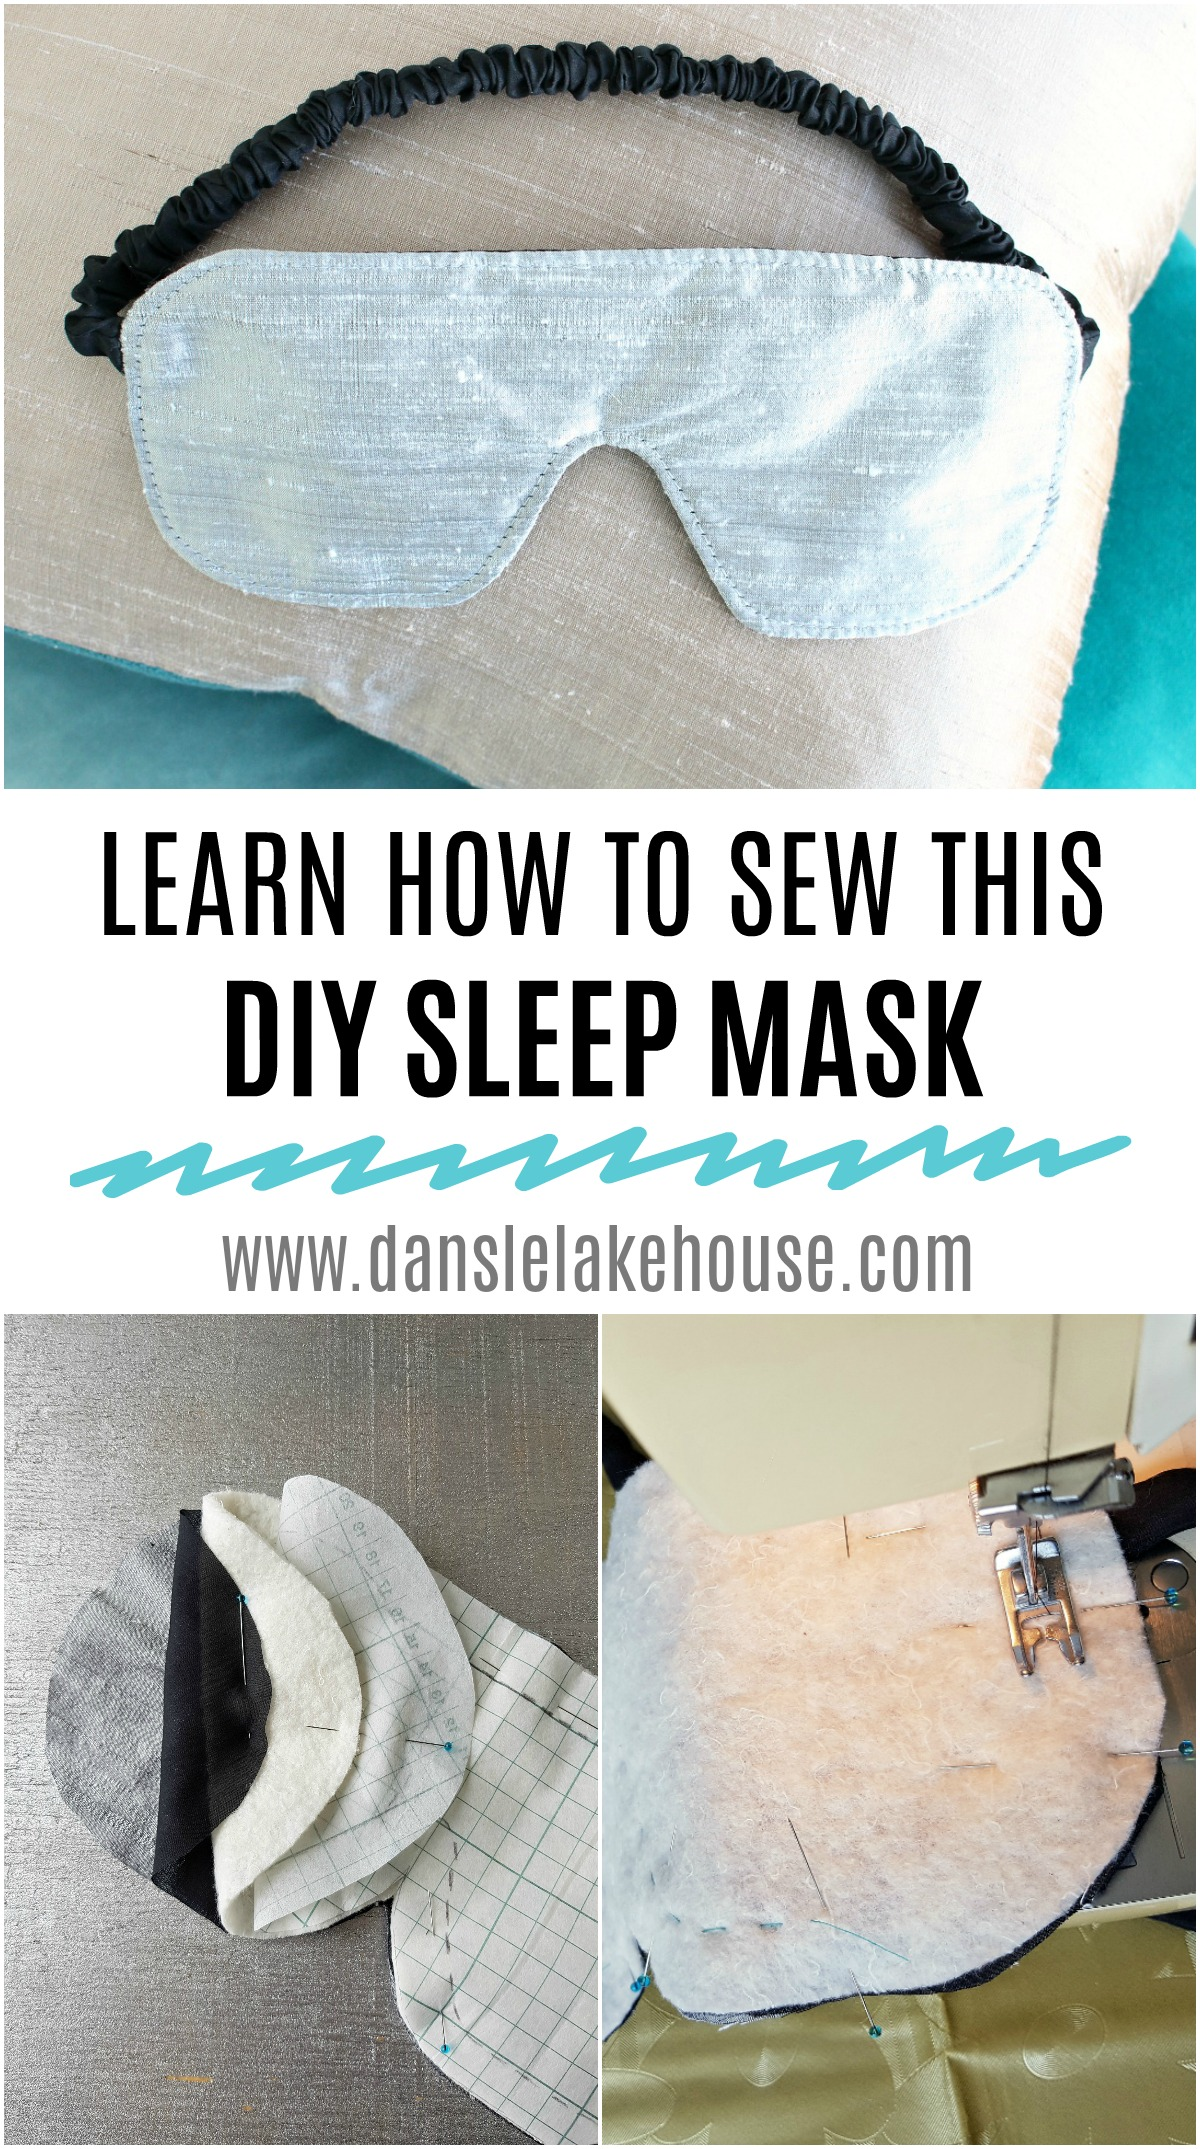 Learn How to Sew an Easy DIY Sleep Mask with Silk Fabric That's Gentle on Skin #sewing #sleepmask #sleep